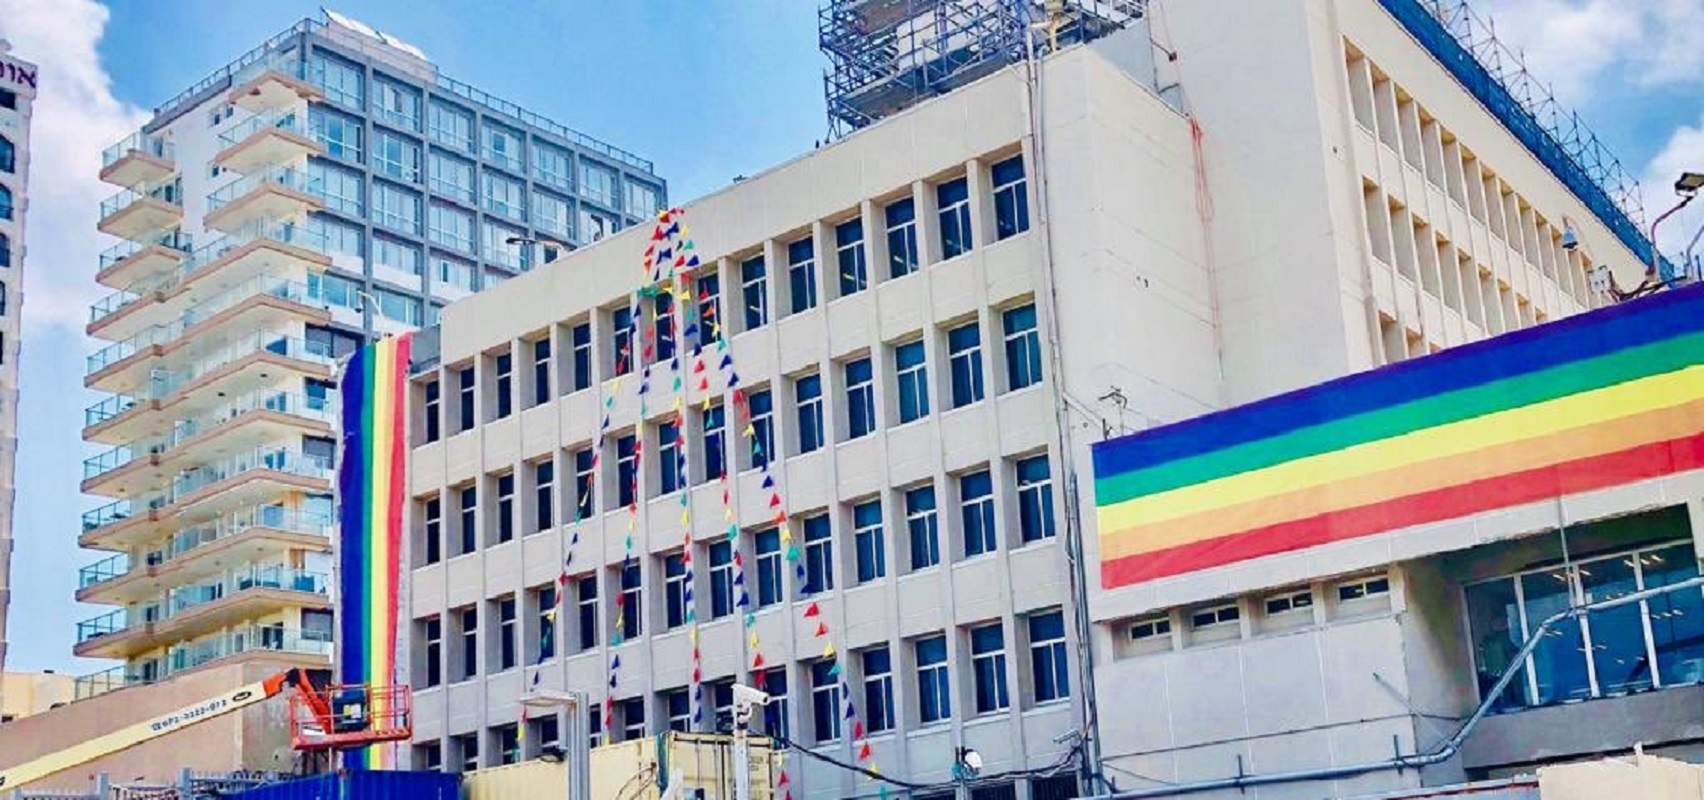 Banned from flying rainbow flags, US embassies hang them instead